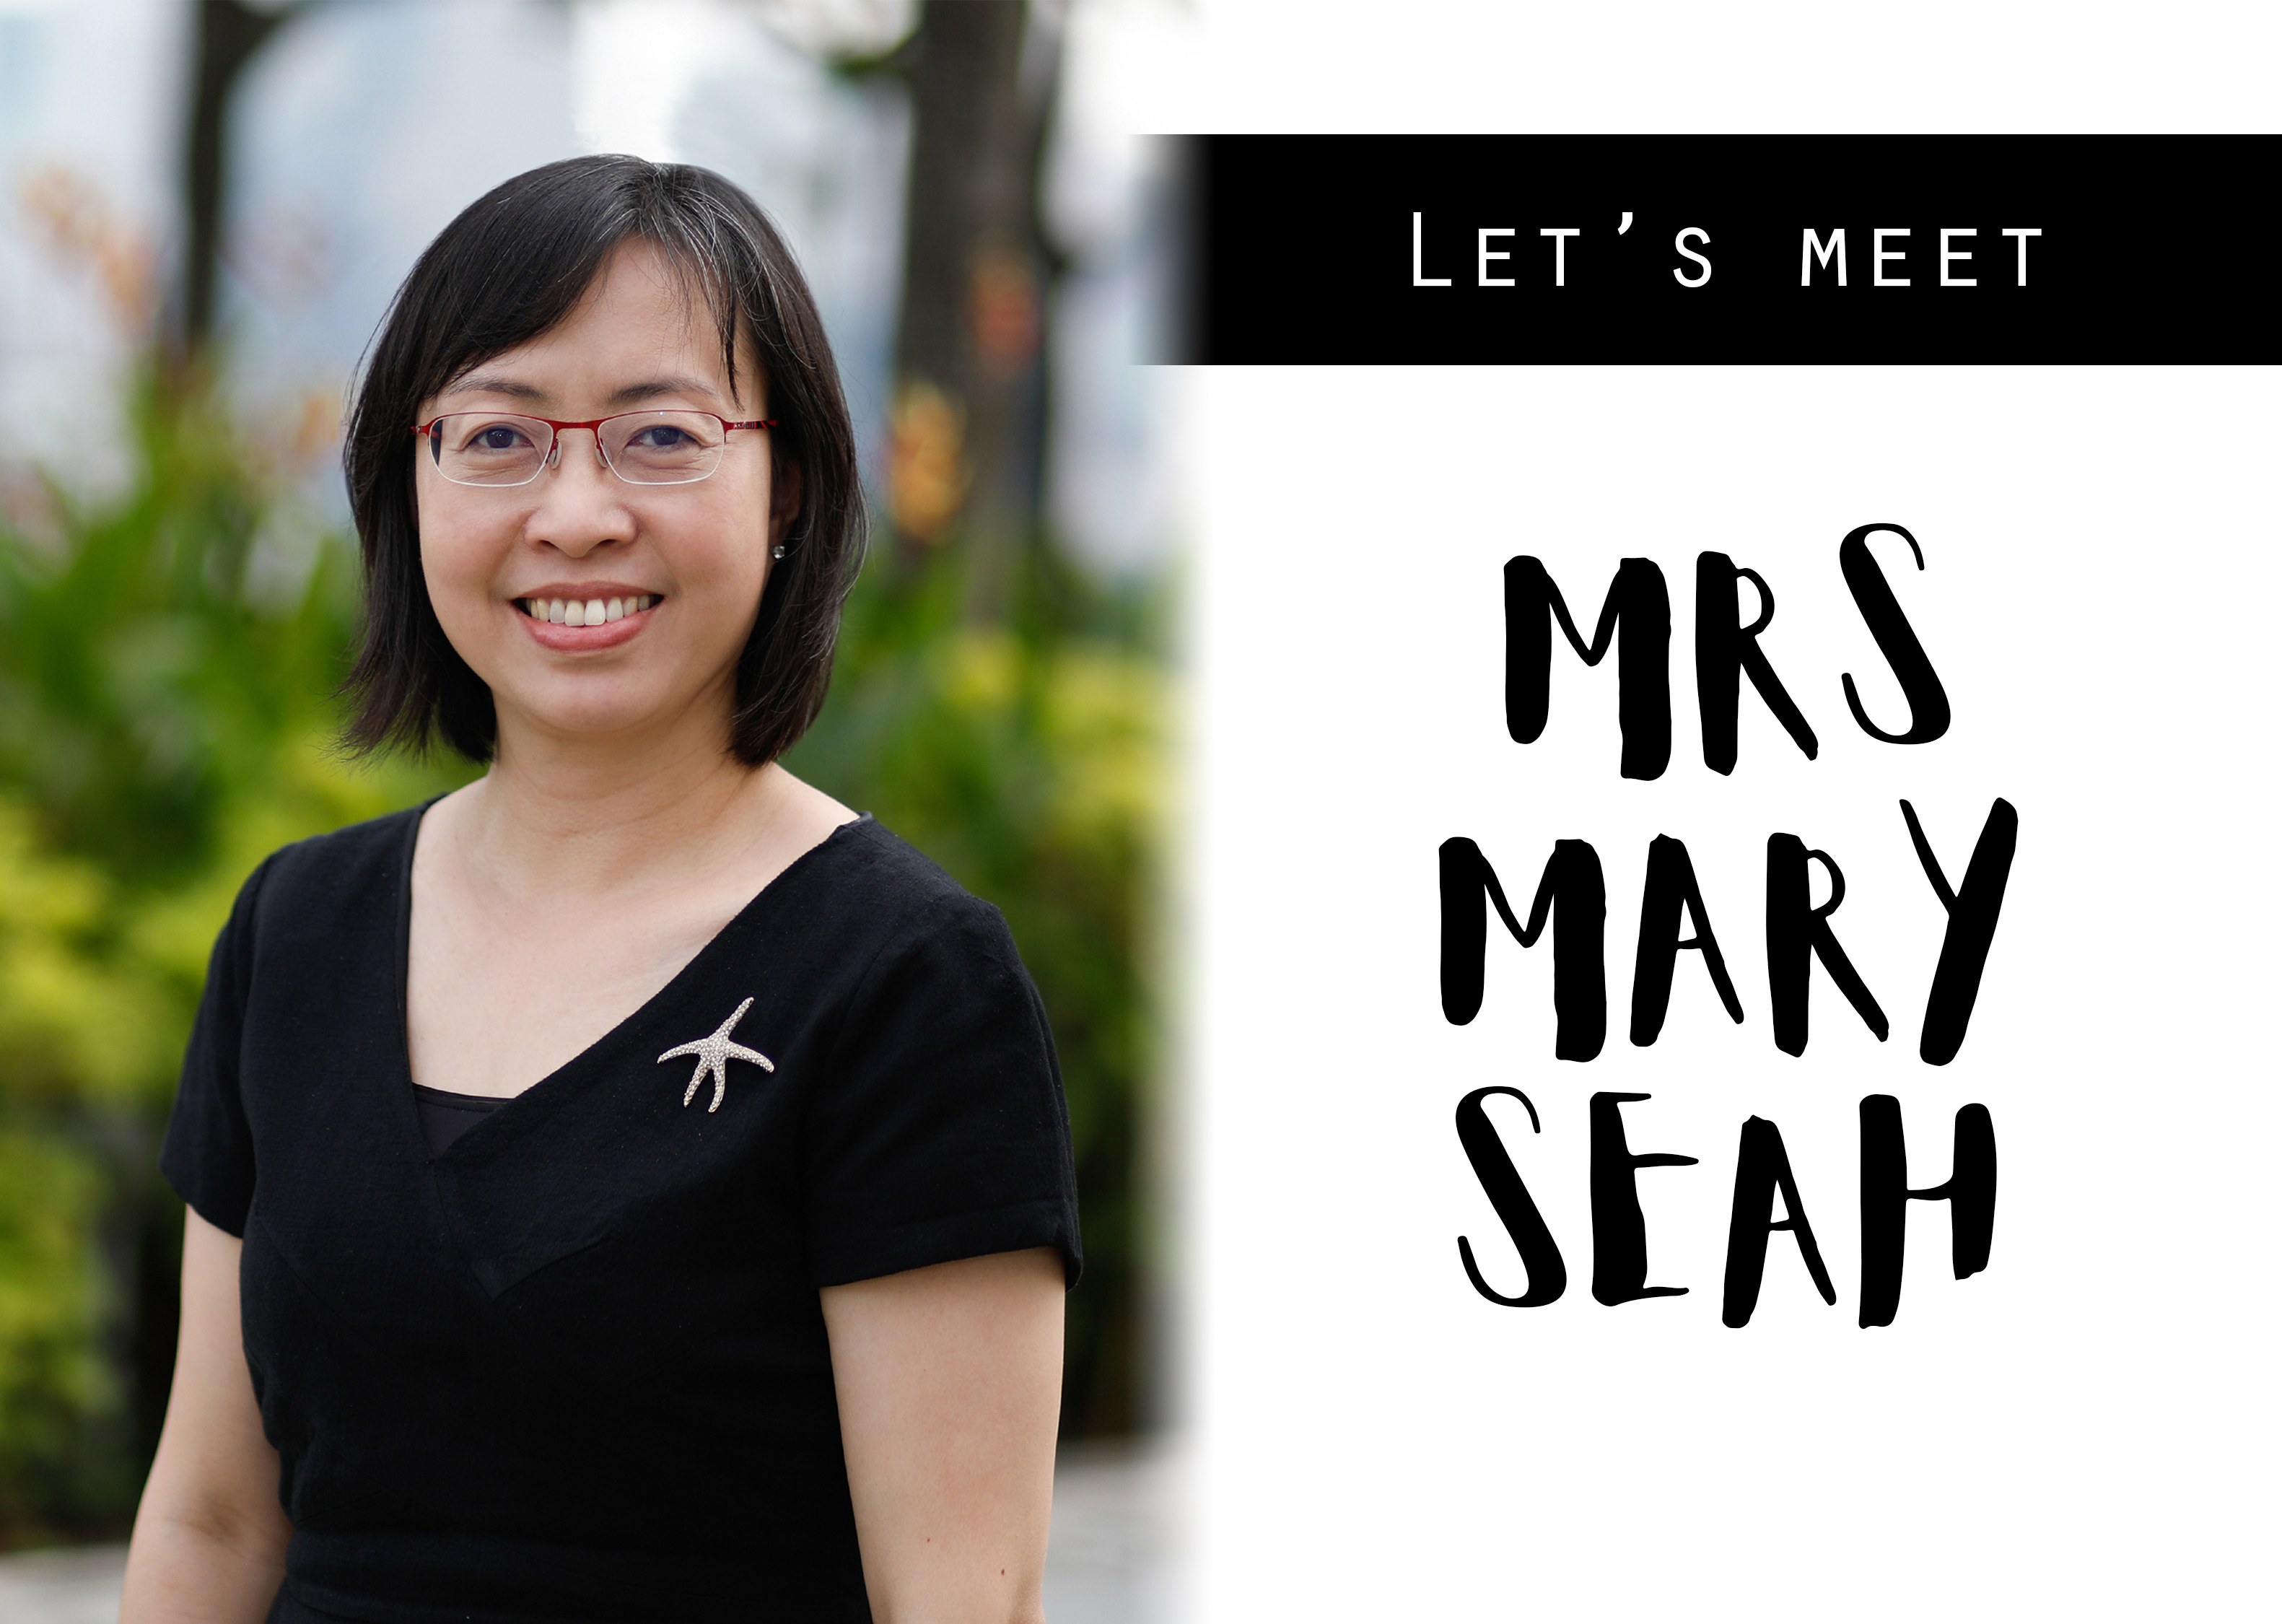 Let's Meet - Mrs Mary Seah